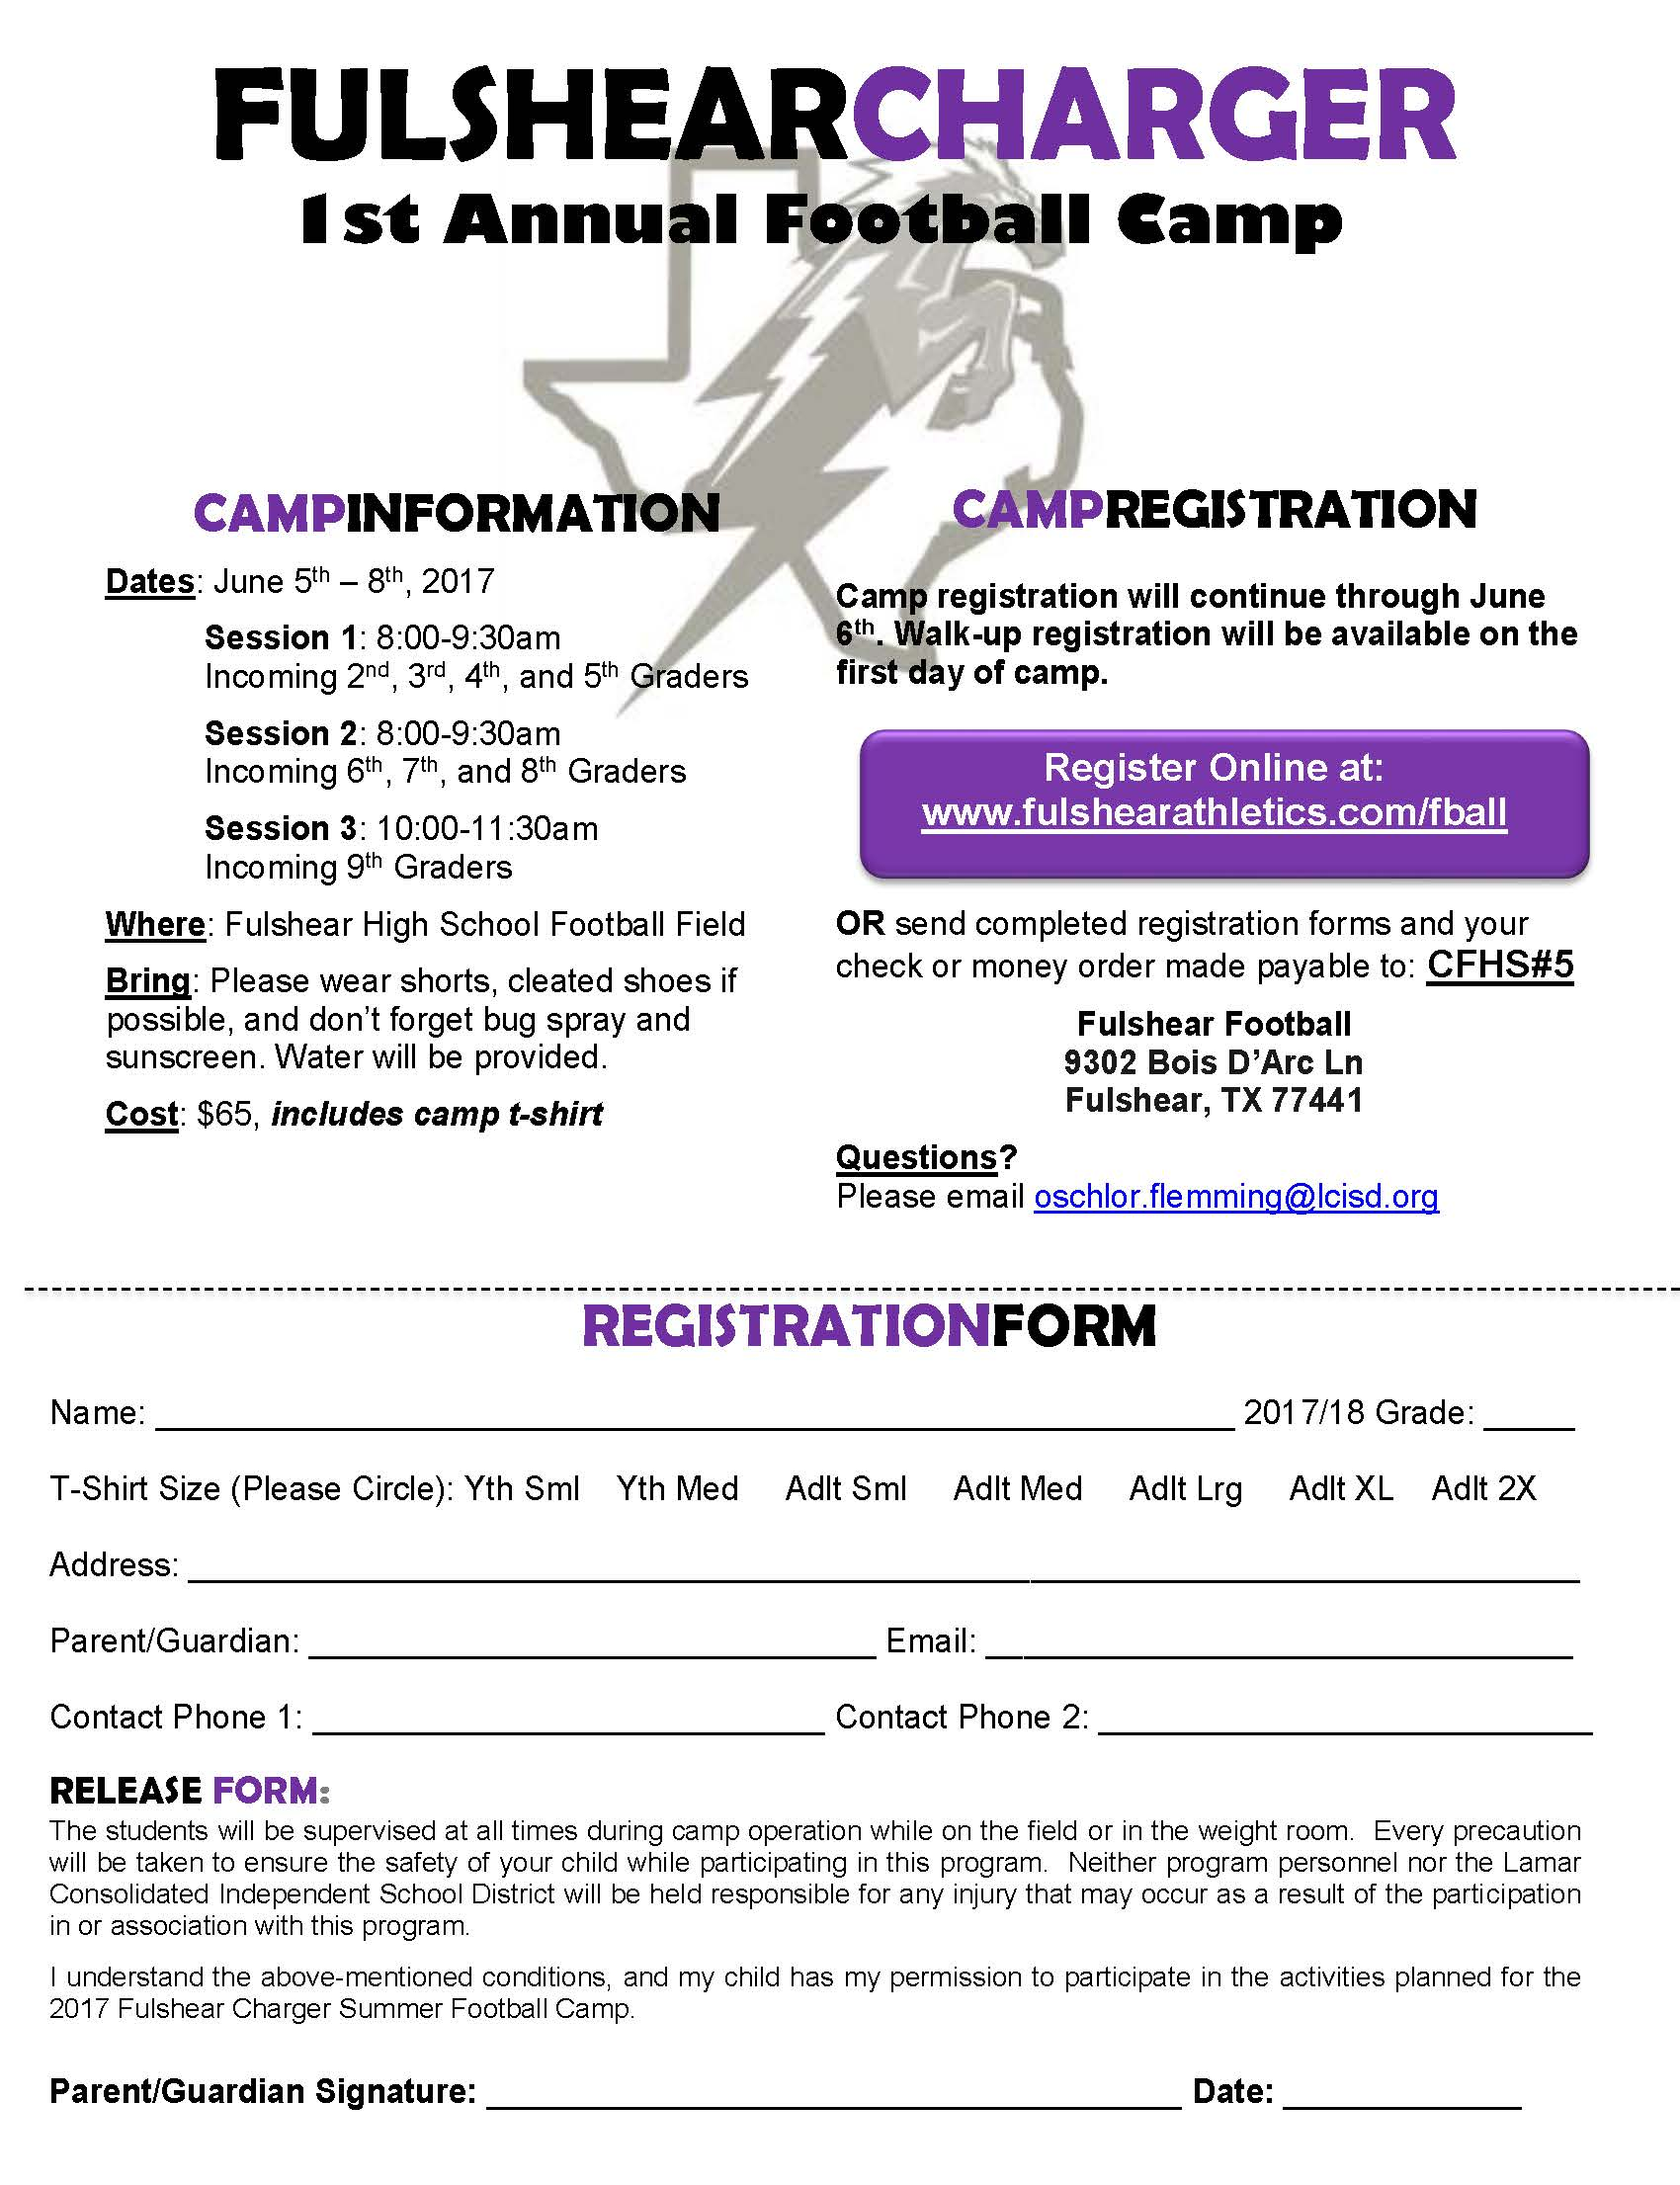 Chager FB Summer Camp Form 2017